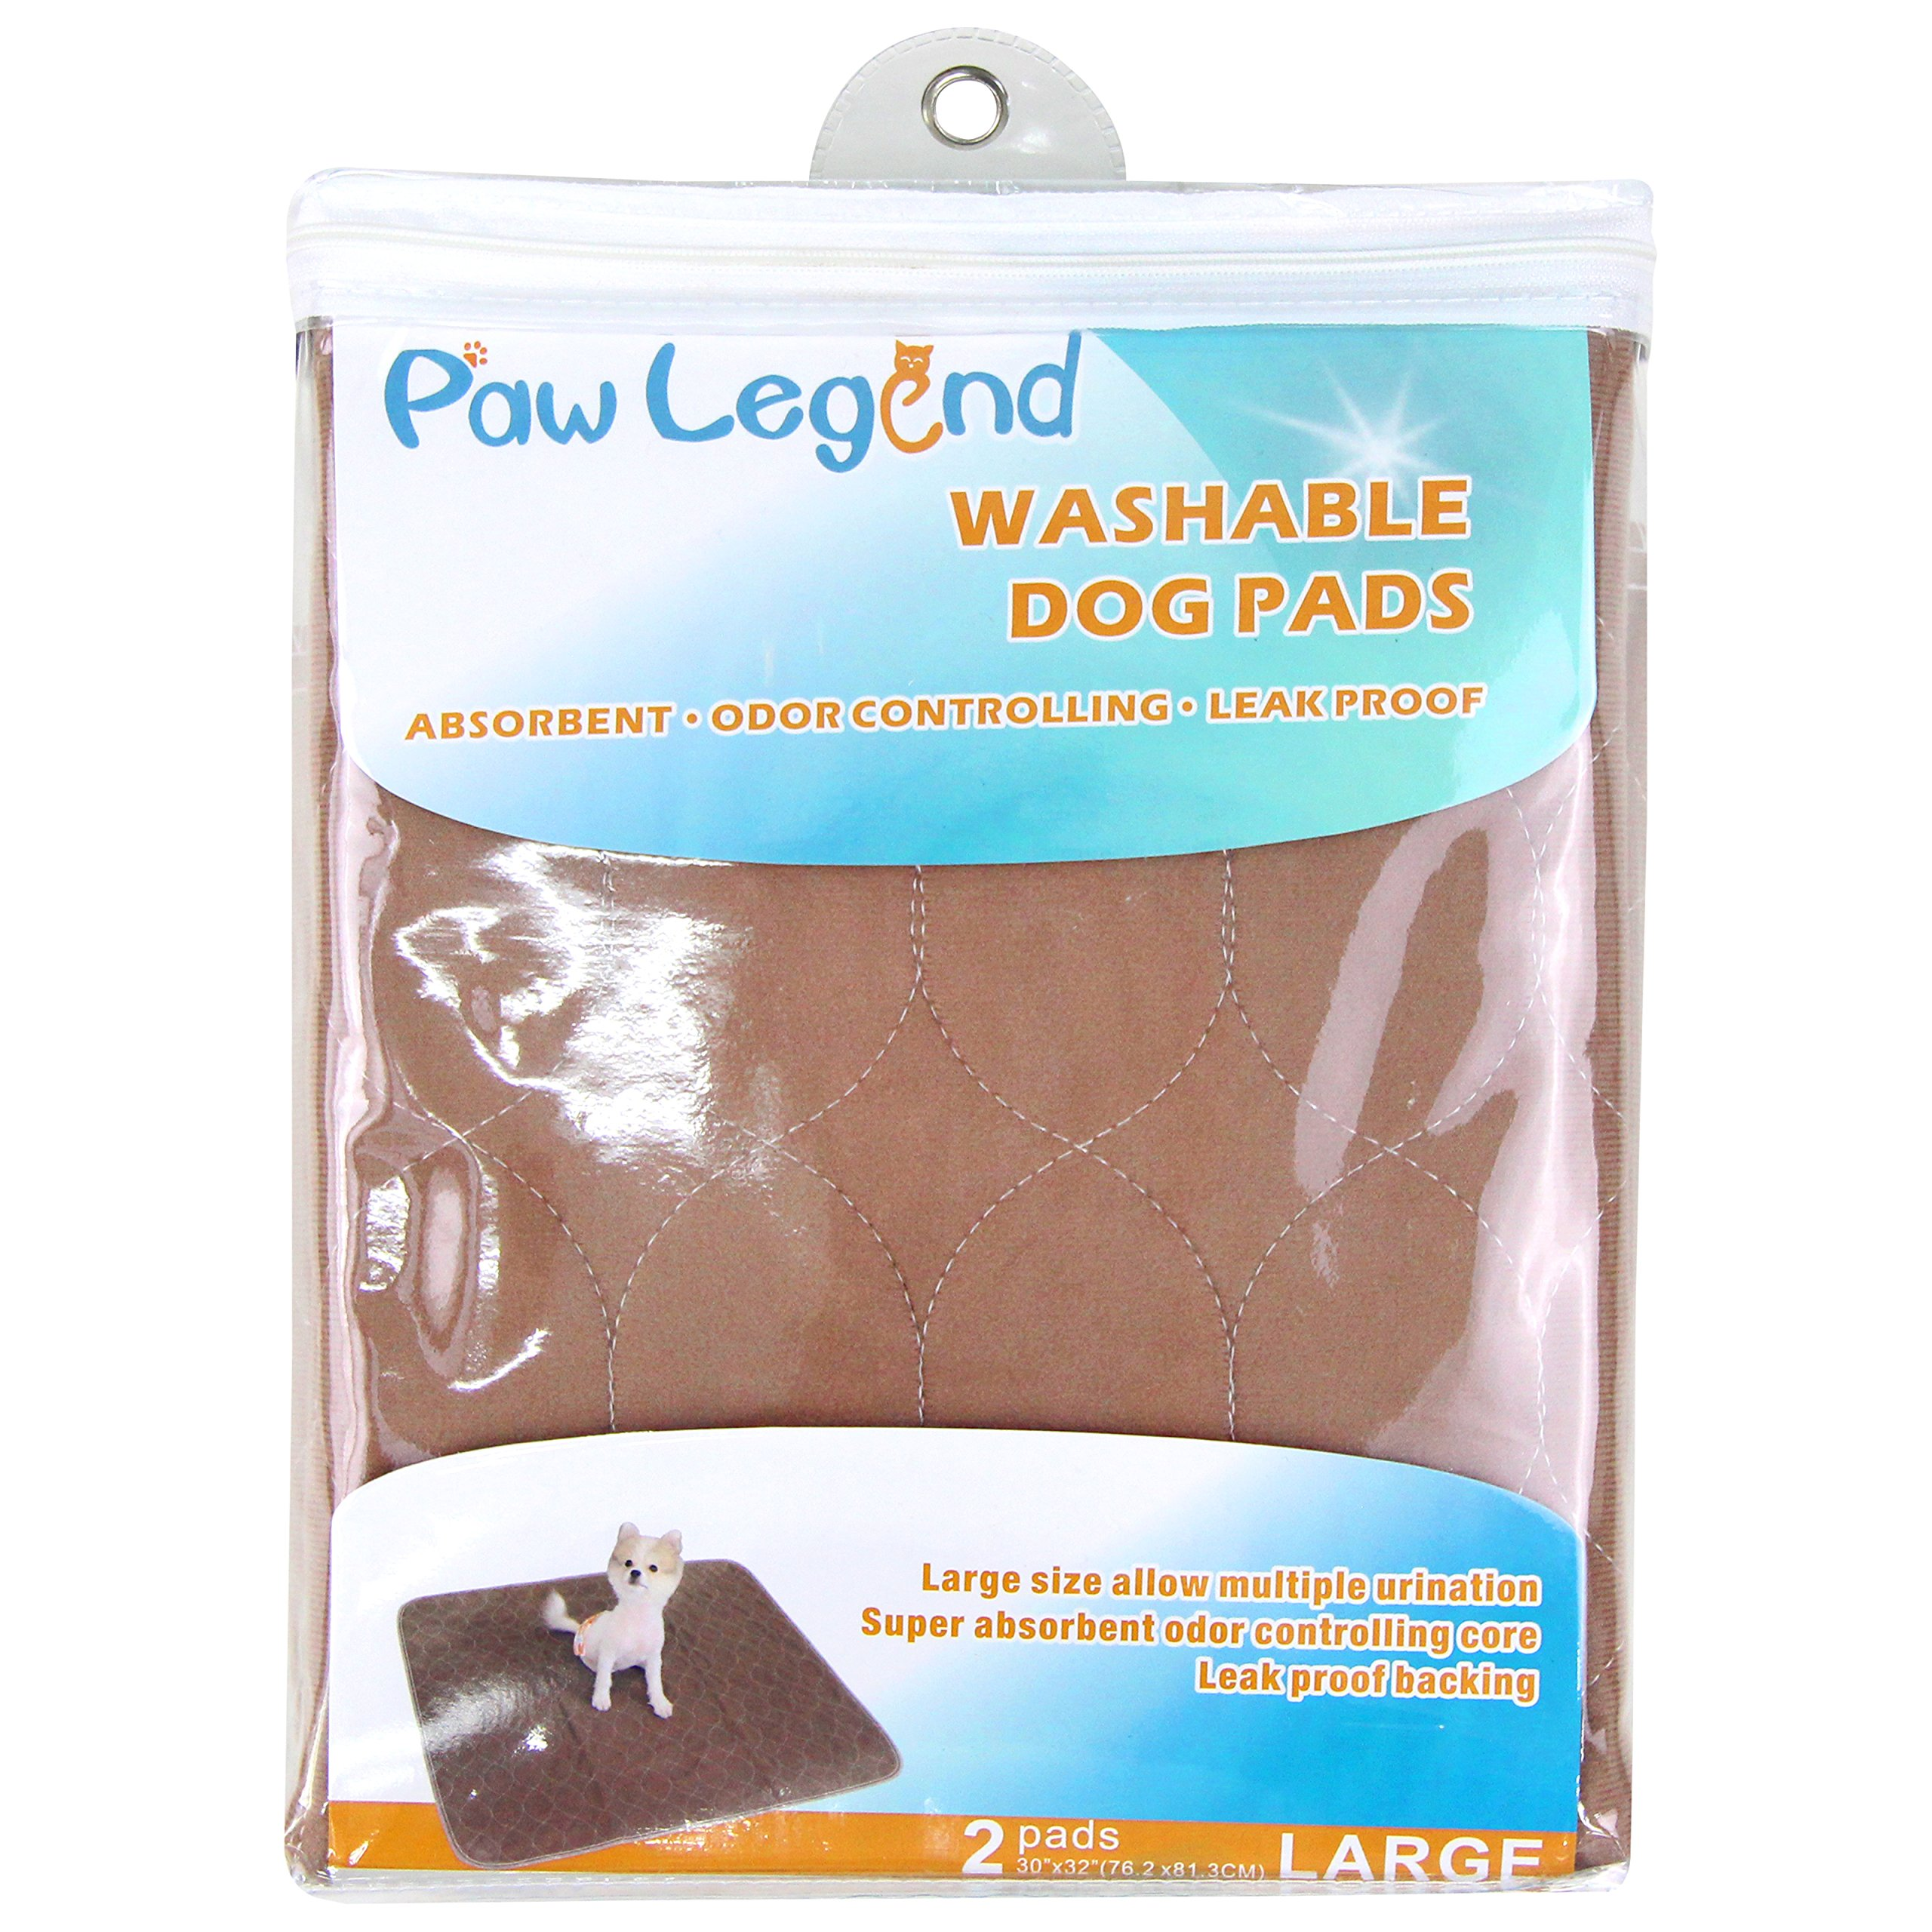 Paw Legend Reusable Dog Pee Pads (2 Pack) of 30''x32'' - Washable Dog Training Pads, Large Travel Pad for Pets(1 Brown & 1 Tan) by Paw Legend (Image #2)